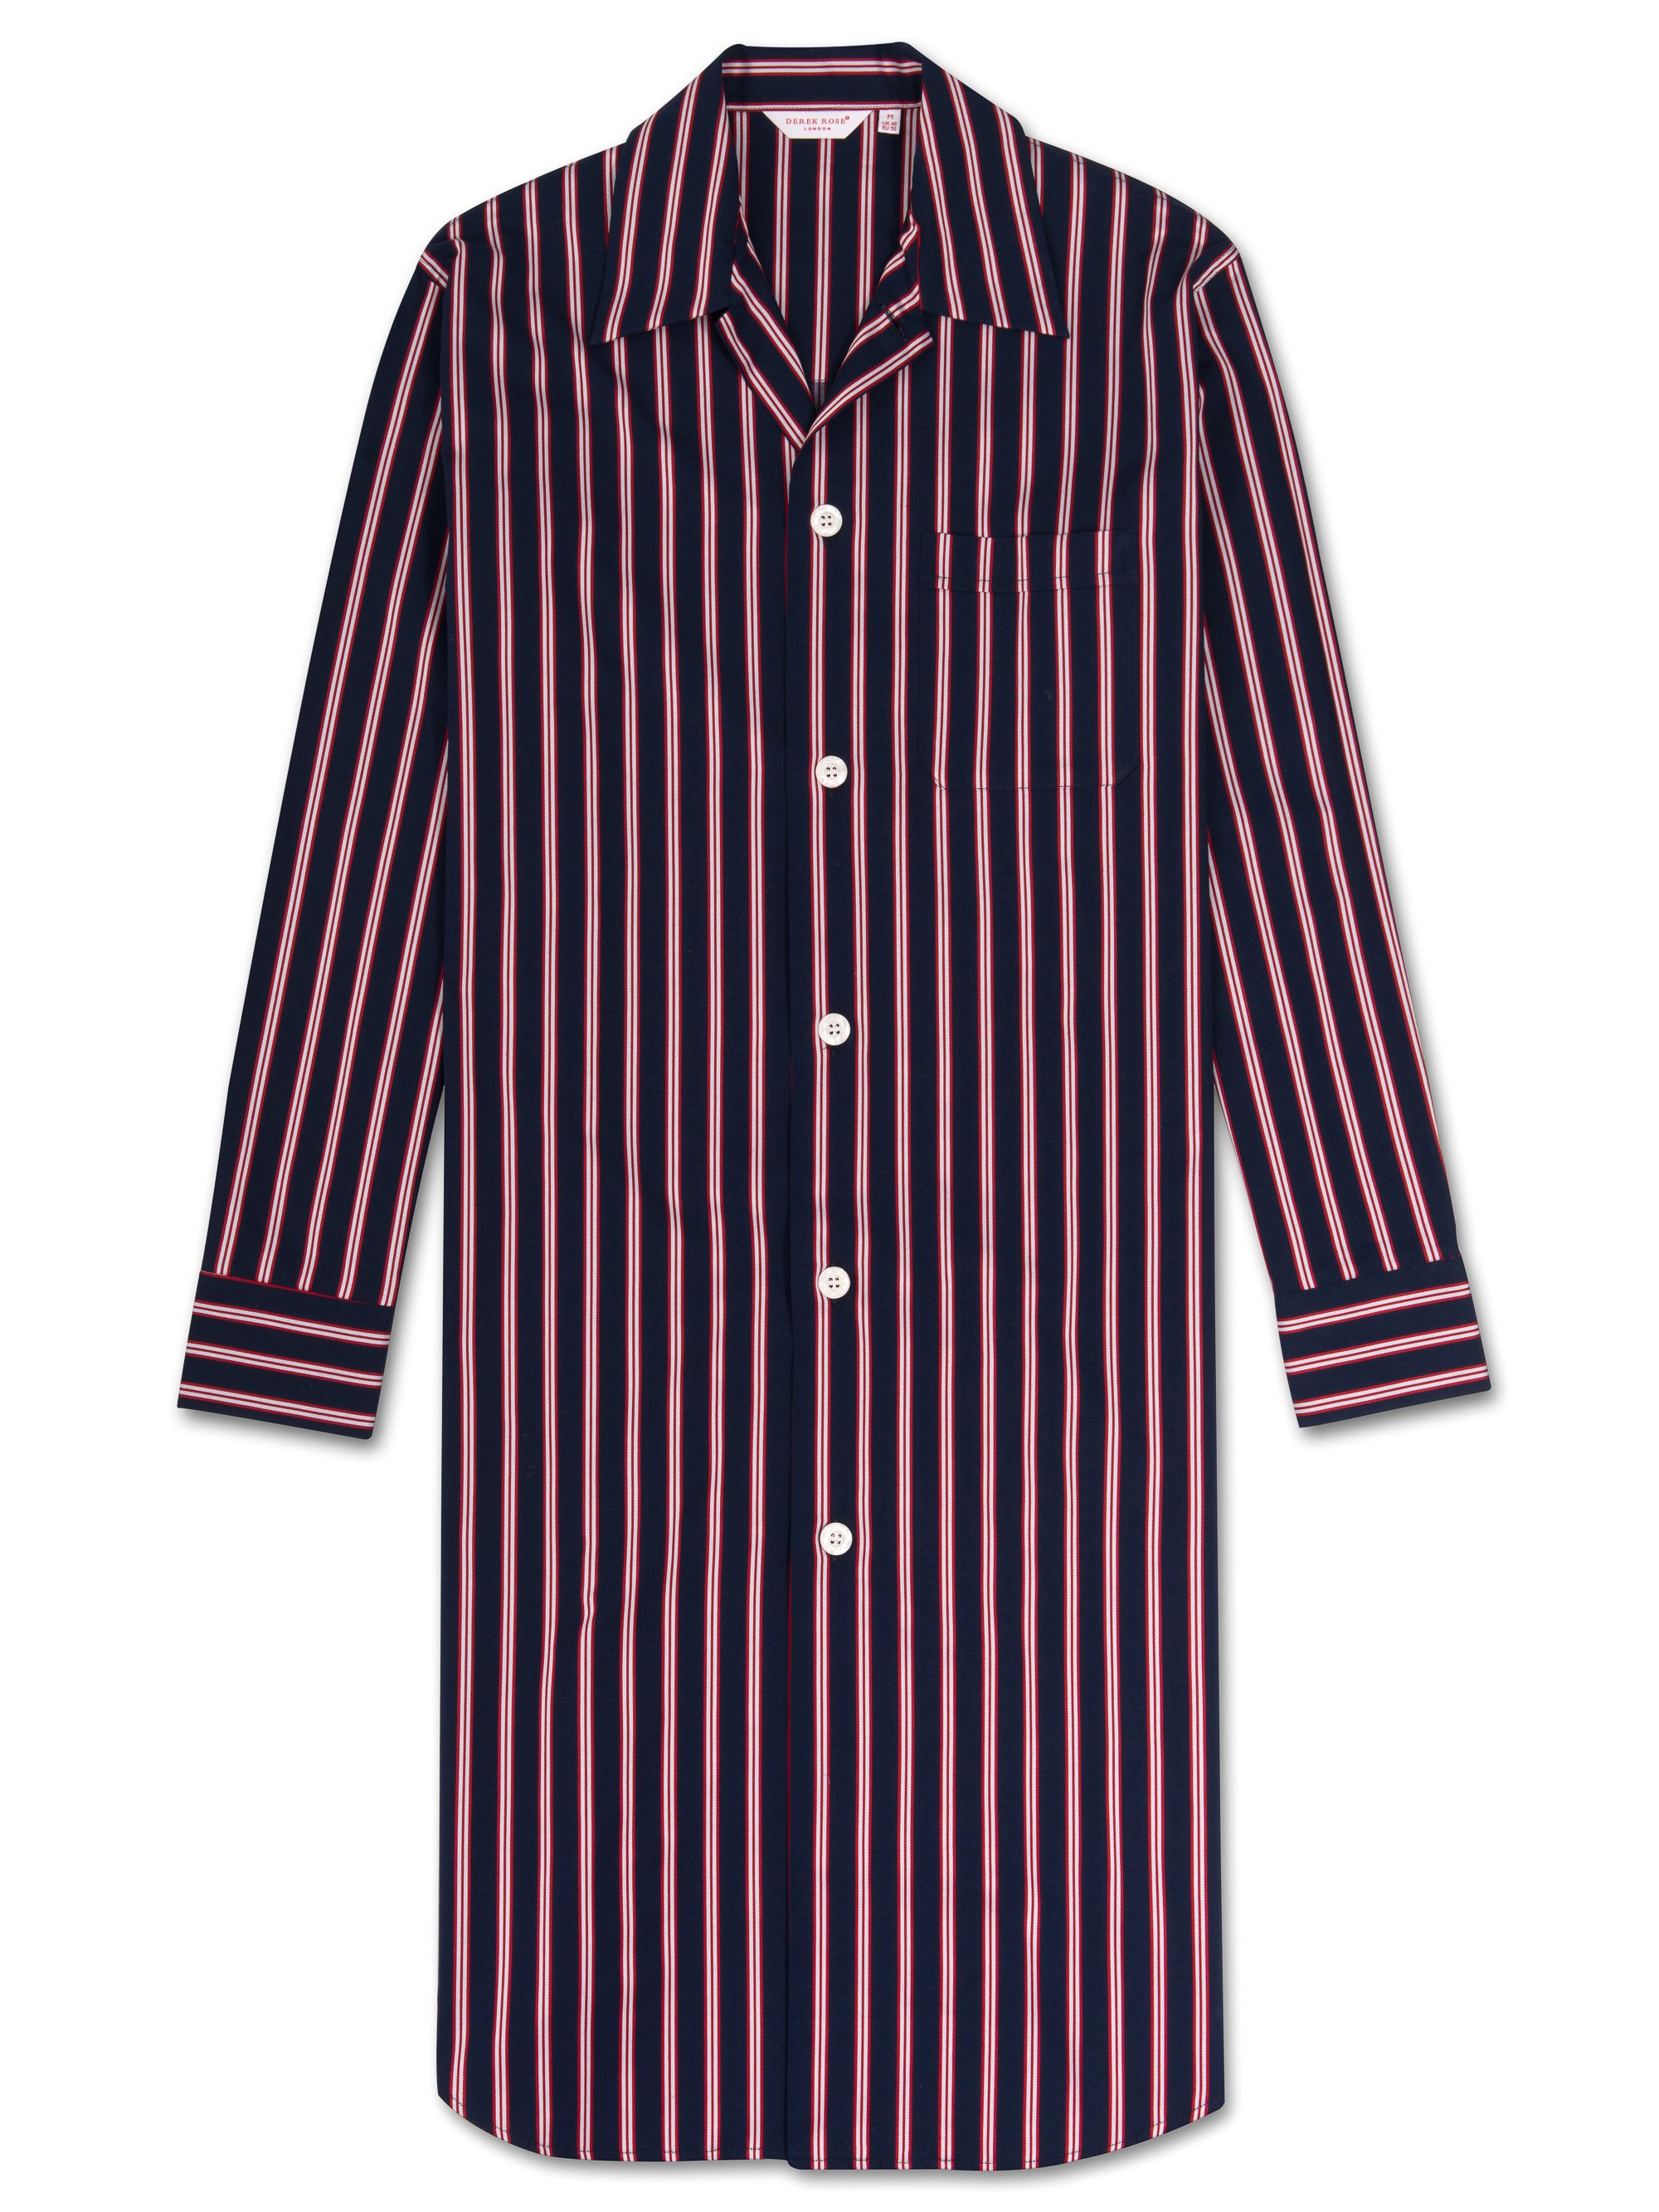 Men's Button-Through Nightshirt Royal 196 Cotton Satin Stripe Navy